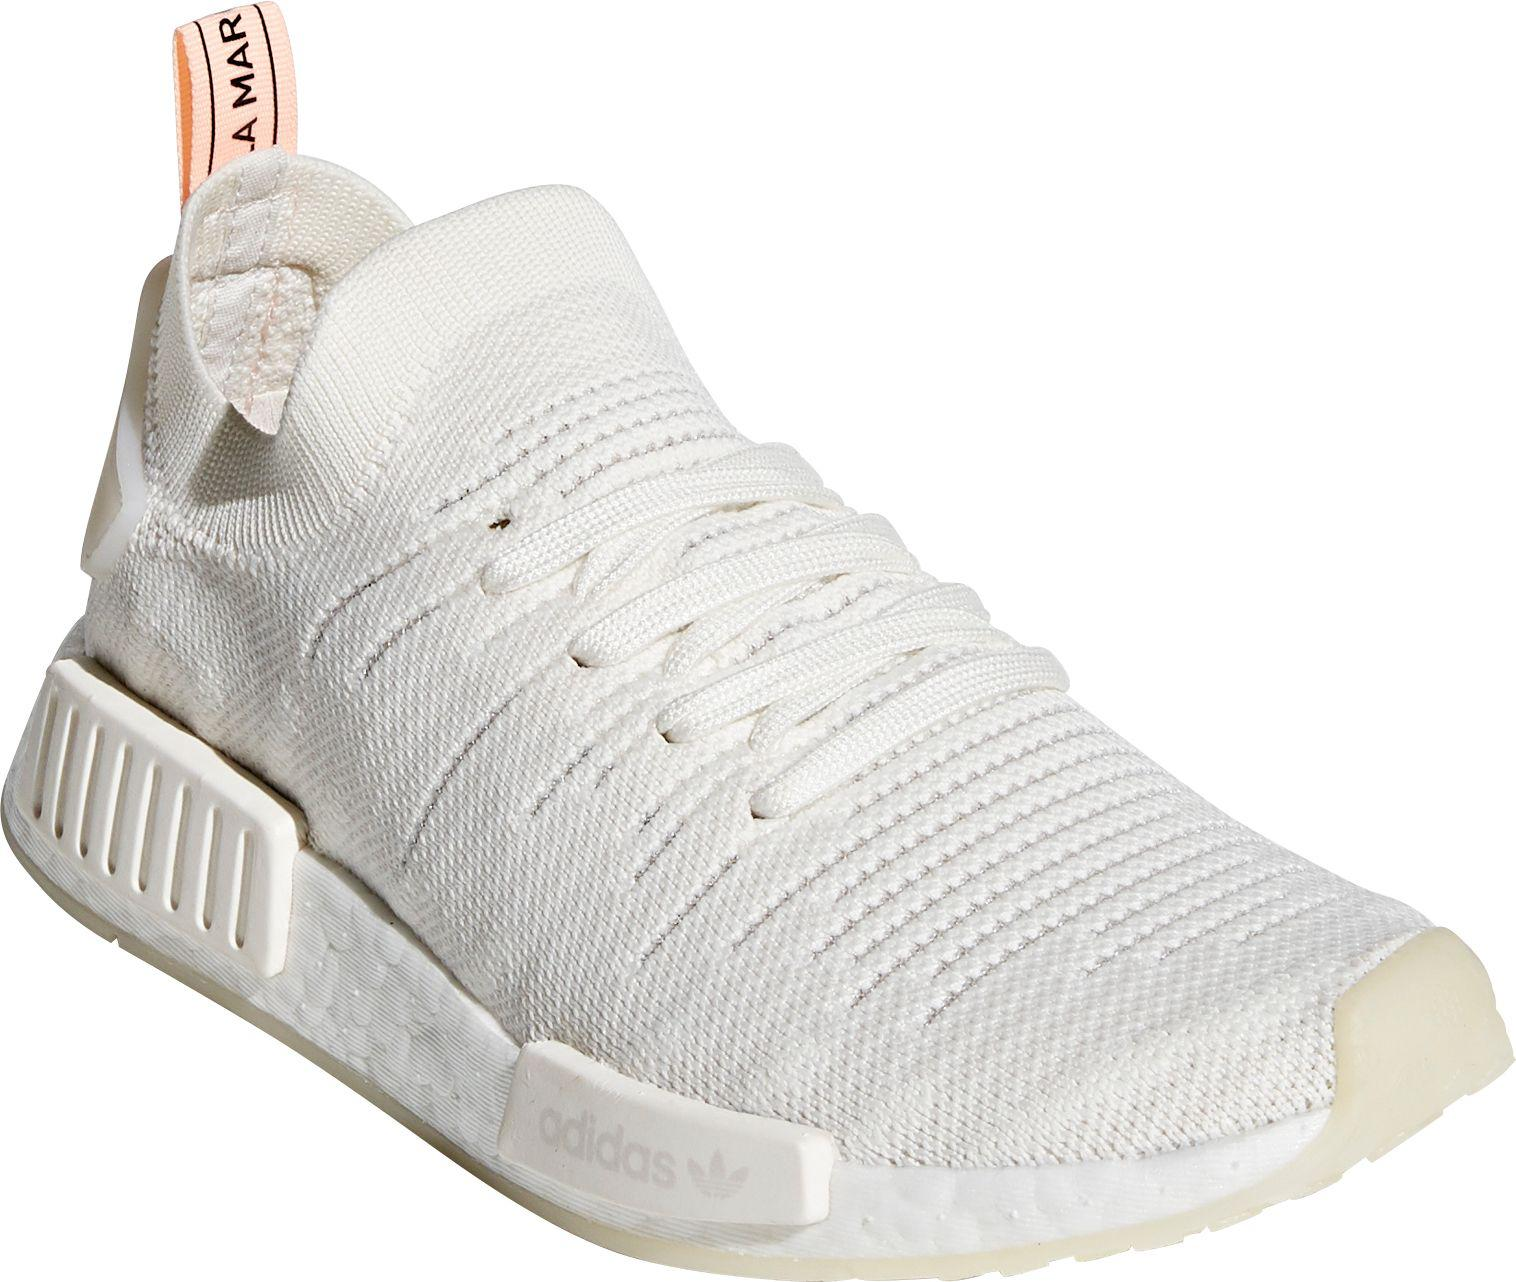 afc5cba10 Lyst - adidas Originals Nmd r1 Stlt Primeknit Shoes in White